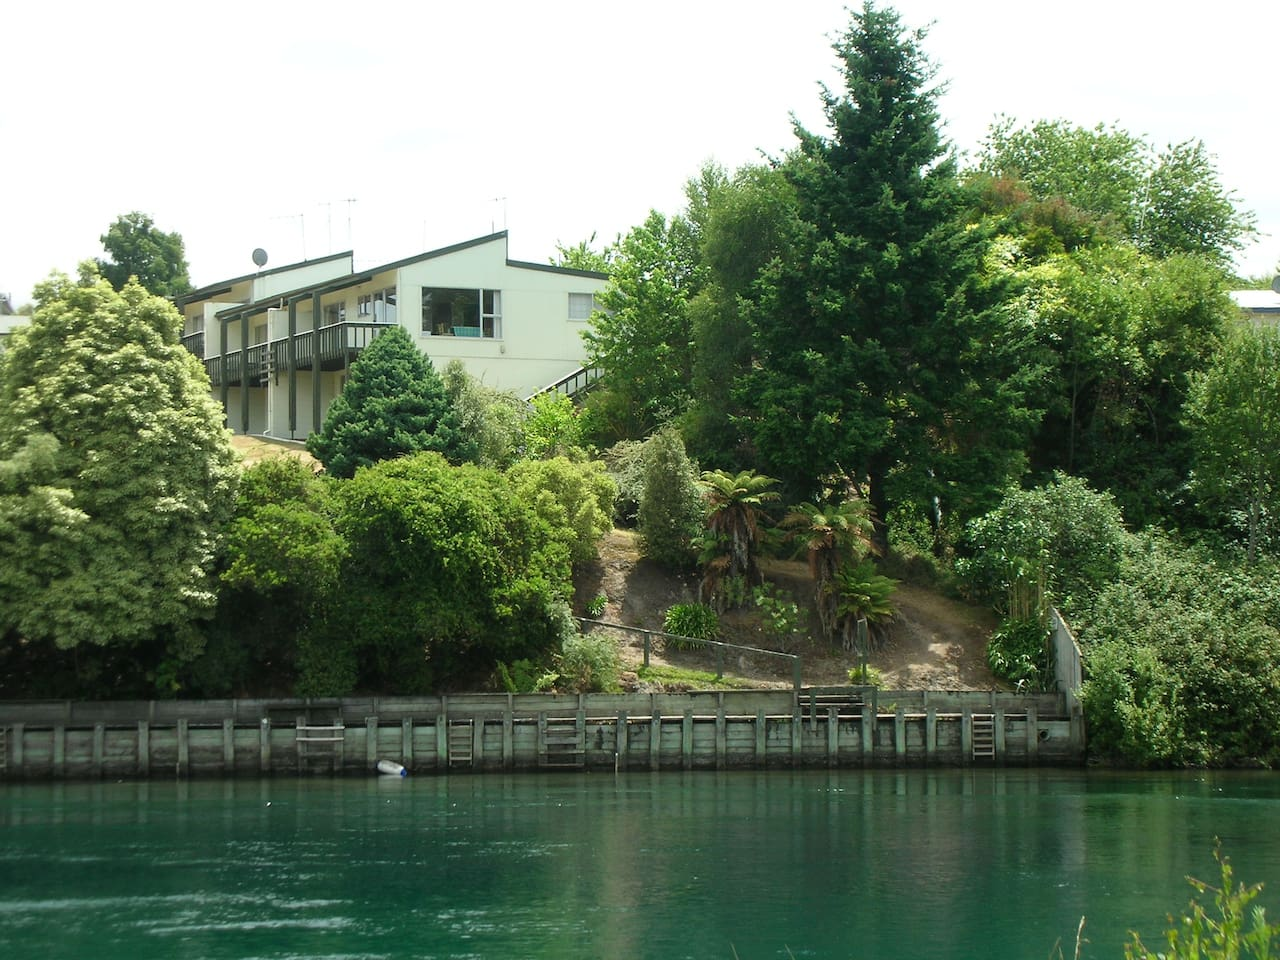 View of Jetty from across river - apartment in photo is not ours